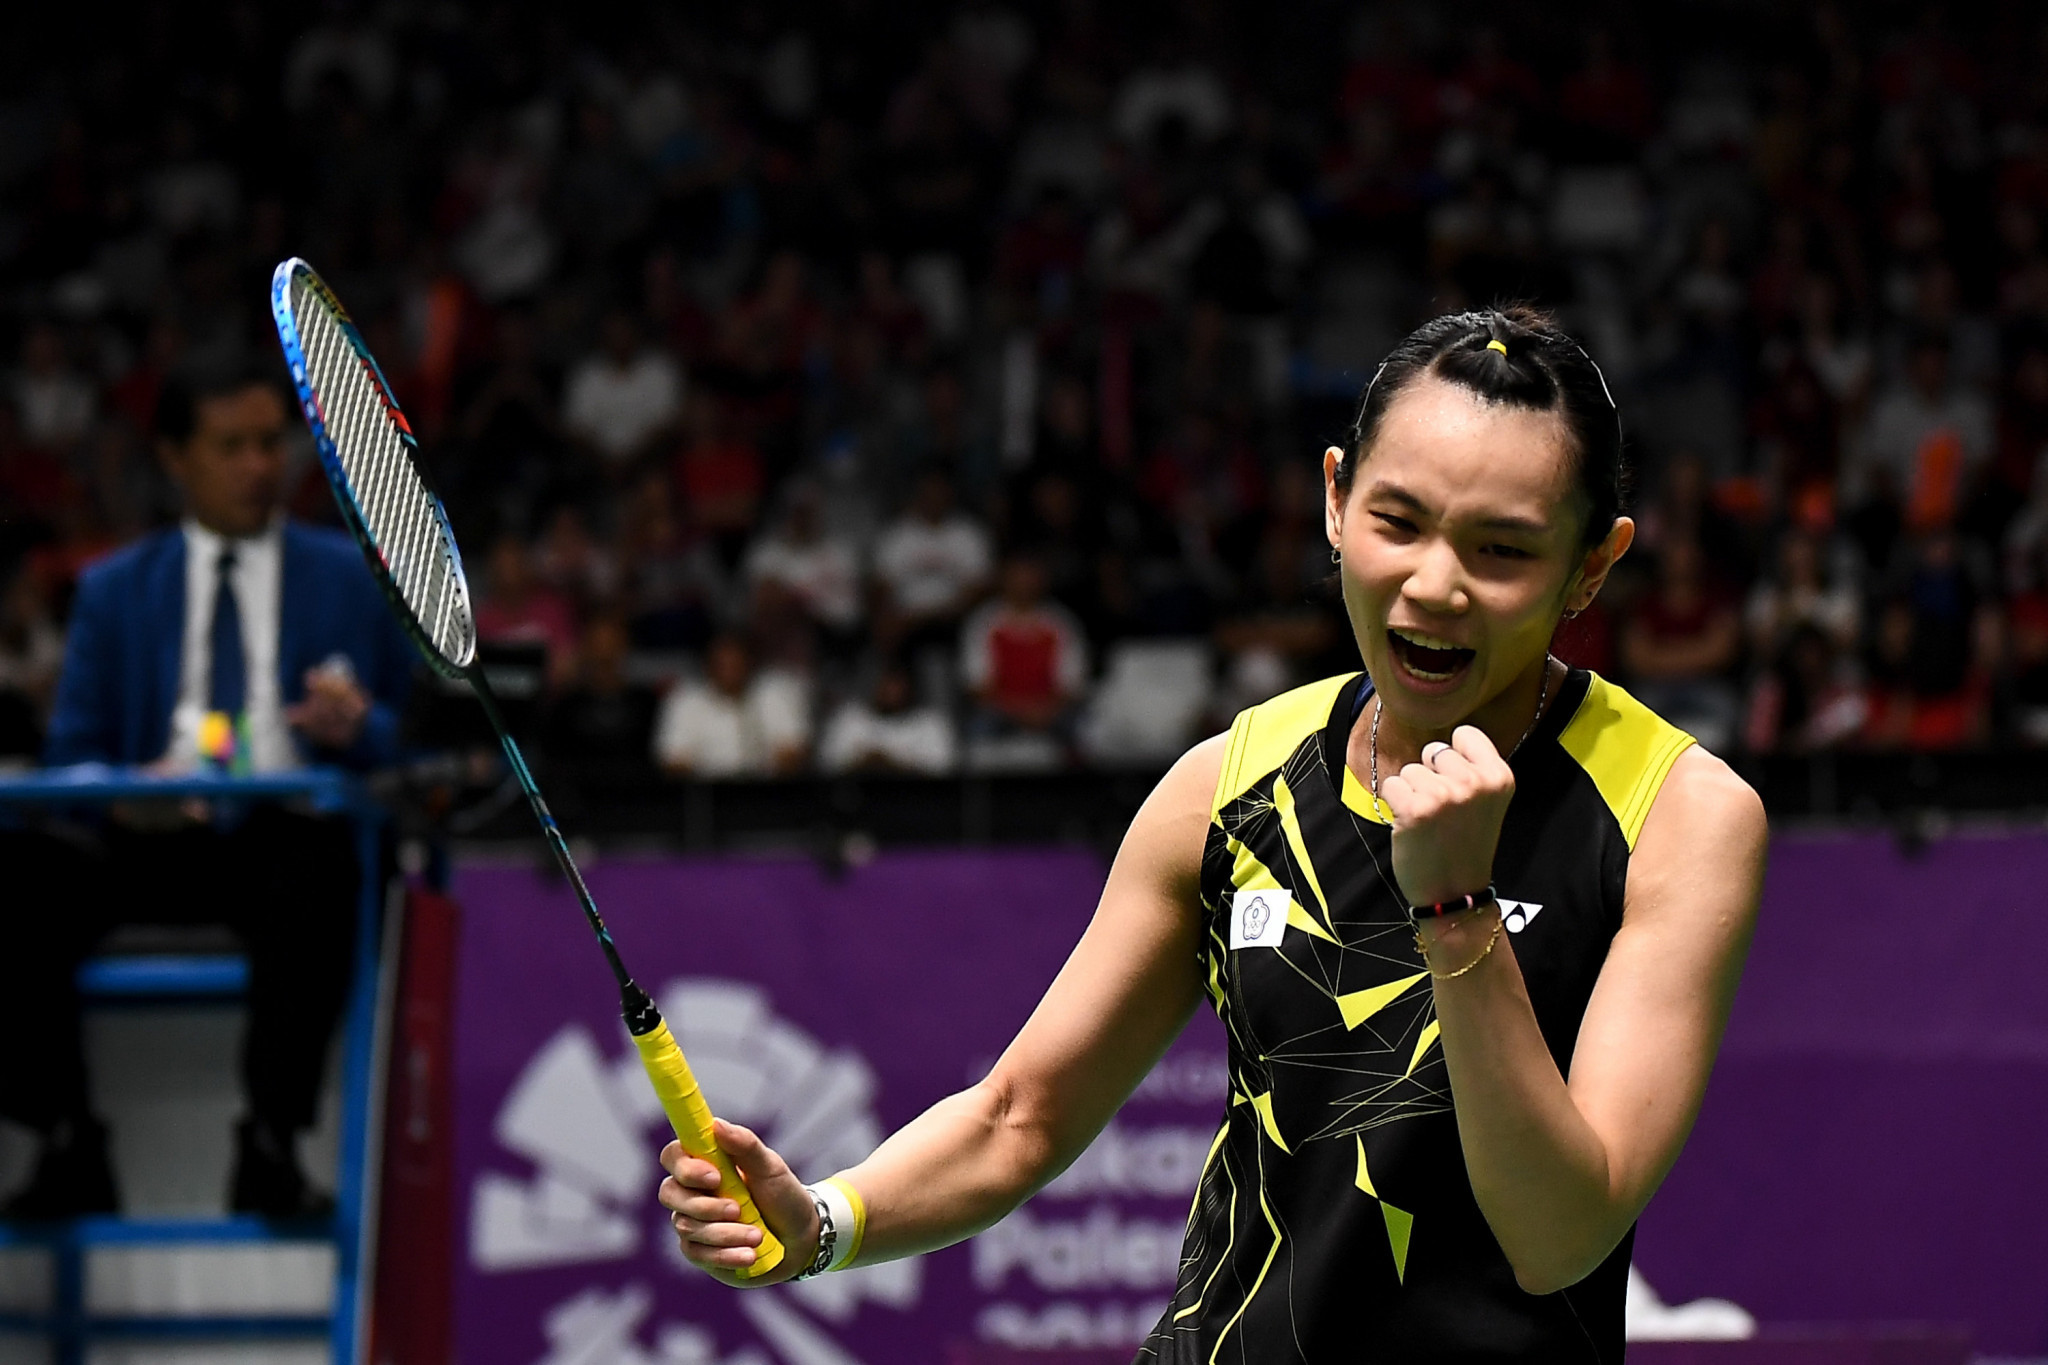 Chinese Taipei's Tai Tzu-ying will be looking to continue her successful 2018 season and maintain her world number one spot at the BWF French Open in Paris having won the Denmark Open in Odense ©Getty Images